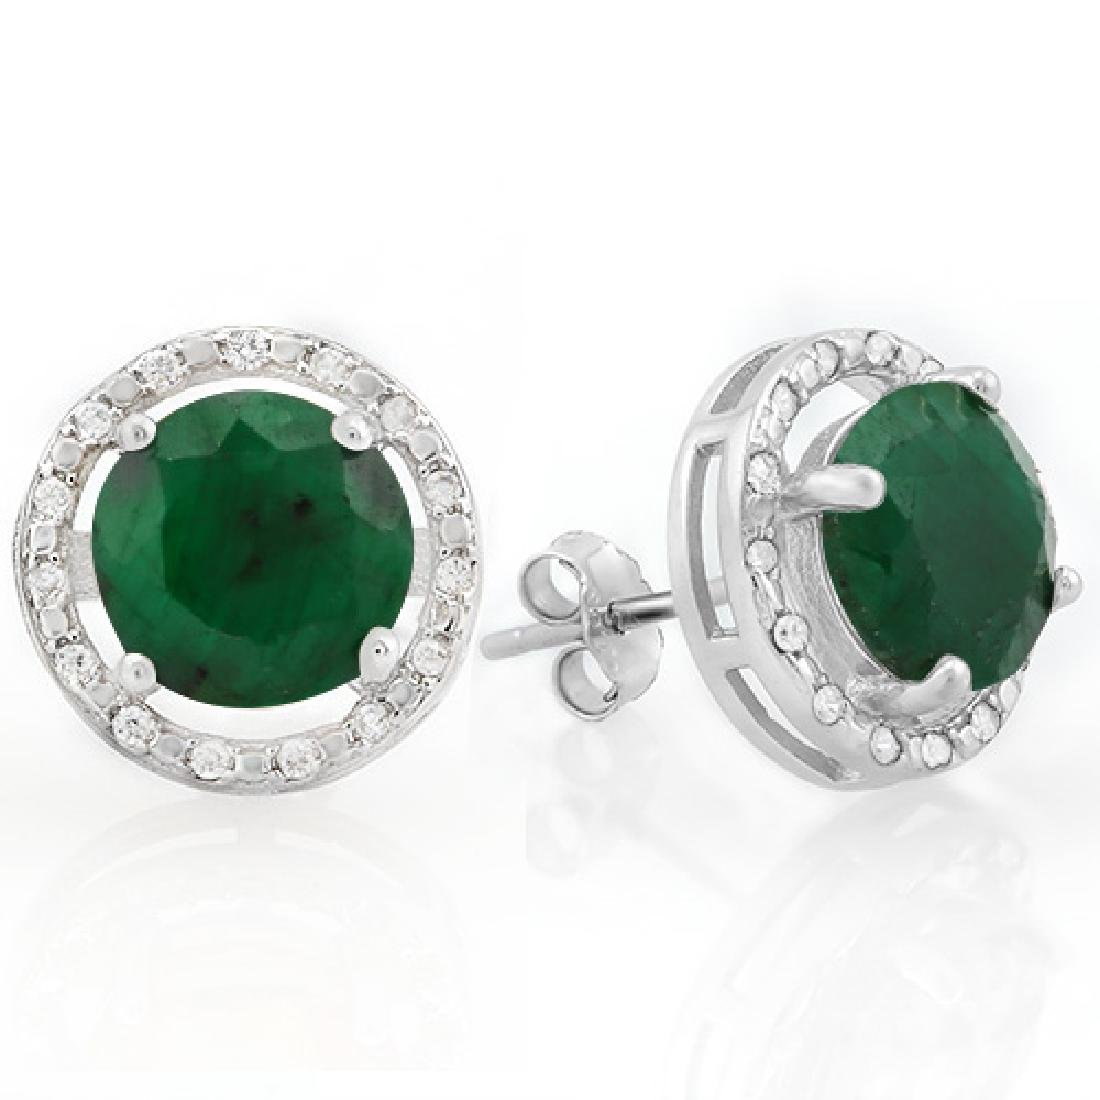 5 1/4 CARAT ENHANCED GENUINE EMERALD & 1/4 CARAT (40 PC